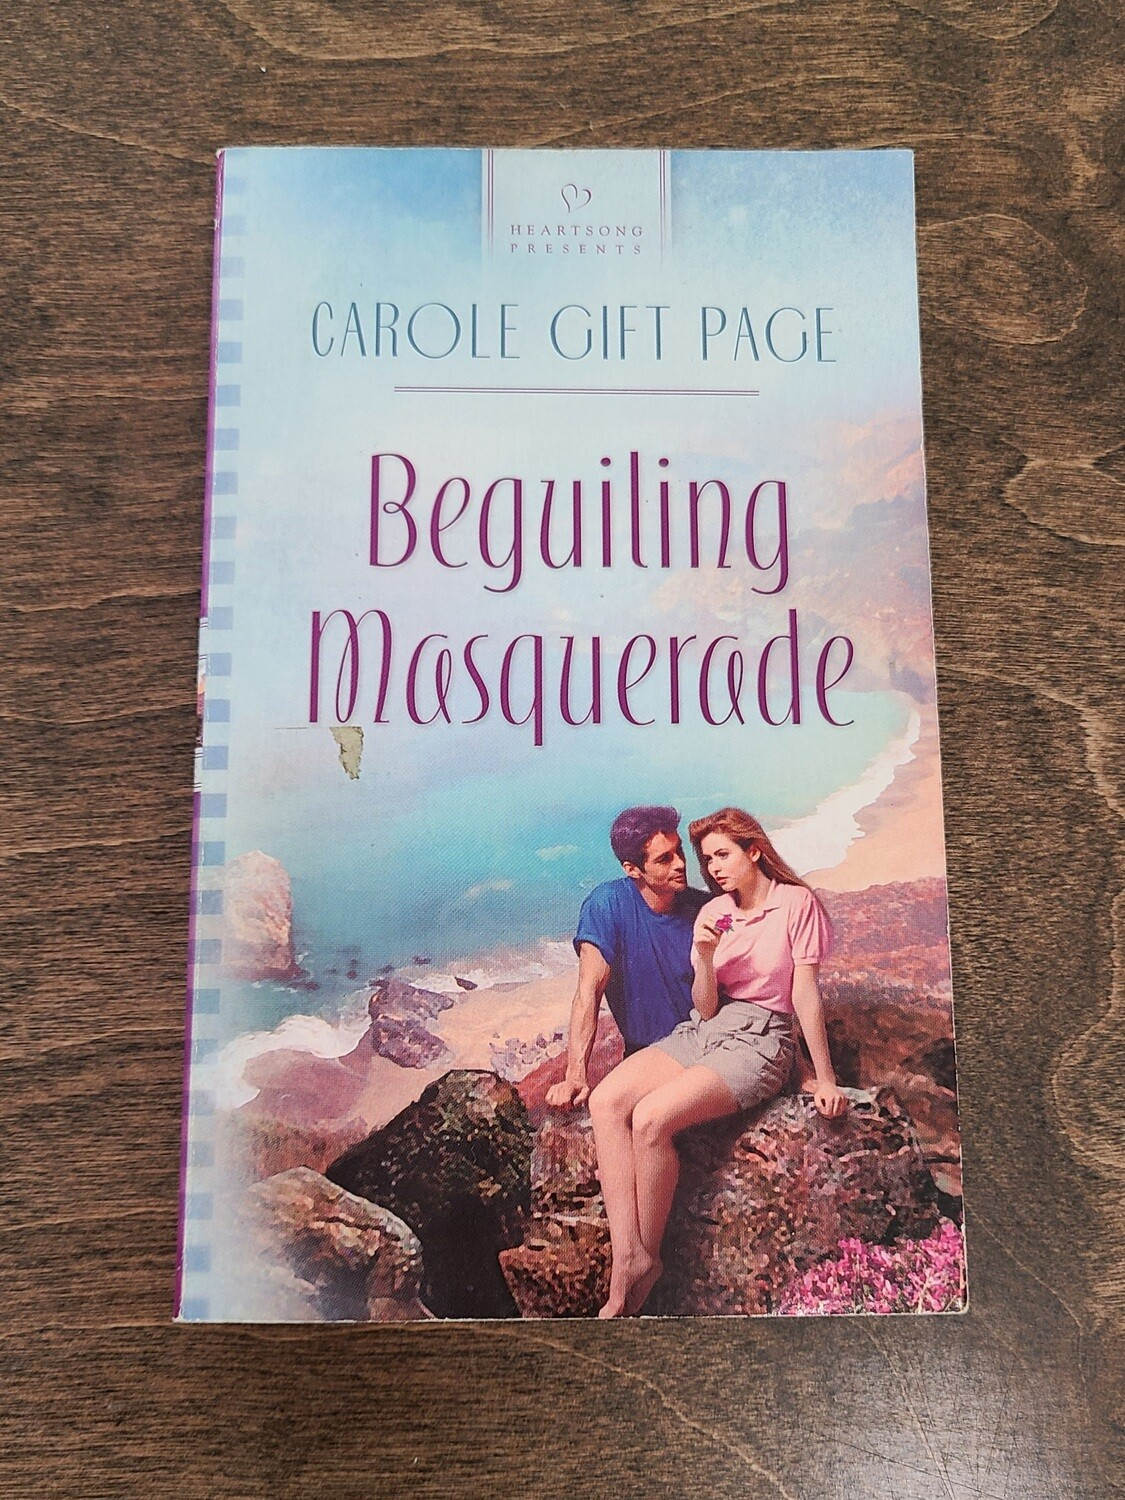 Beguiling Masquerade by Carole Gift Page